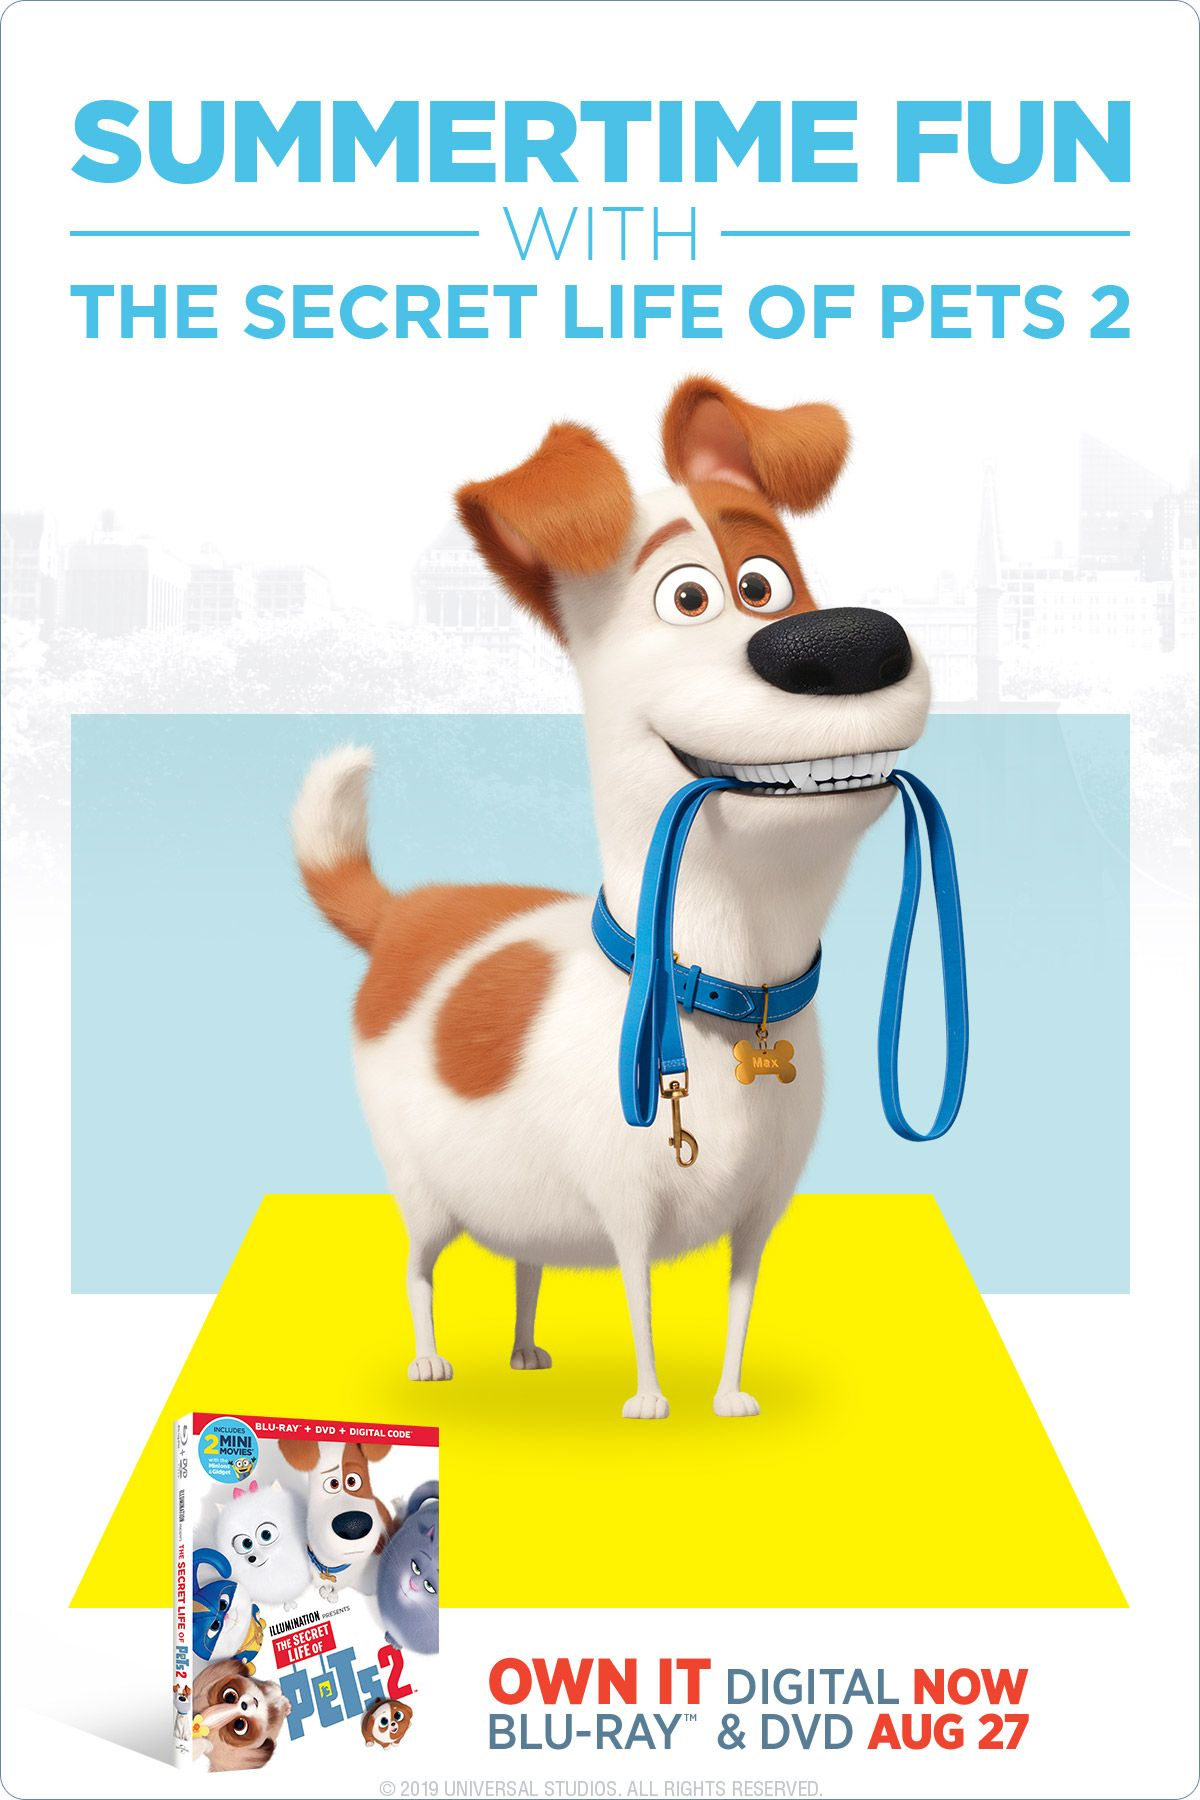 9 Ways To Turn The Secret Life Of Pets 2 Into Summertime Fun With Your Kids Secret Life Of Pets Secret Life Summertime Fun